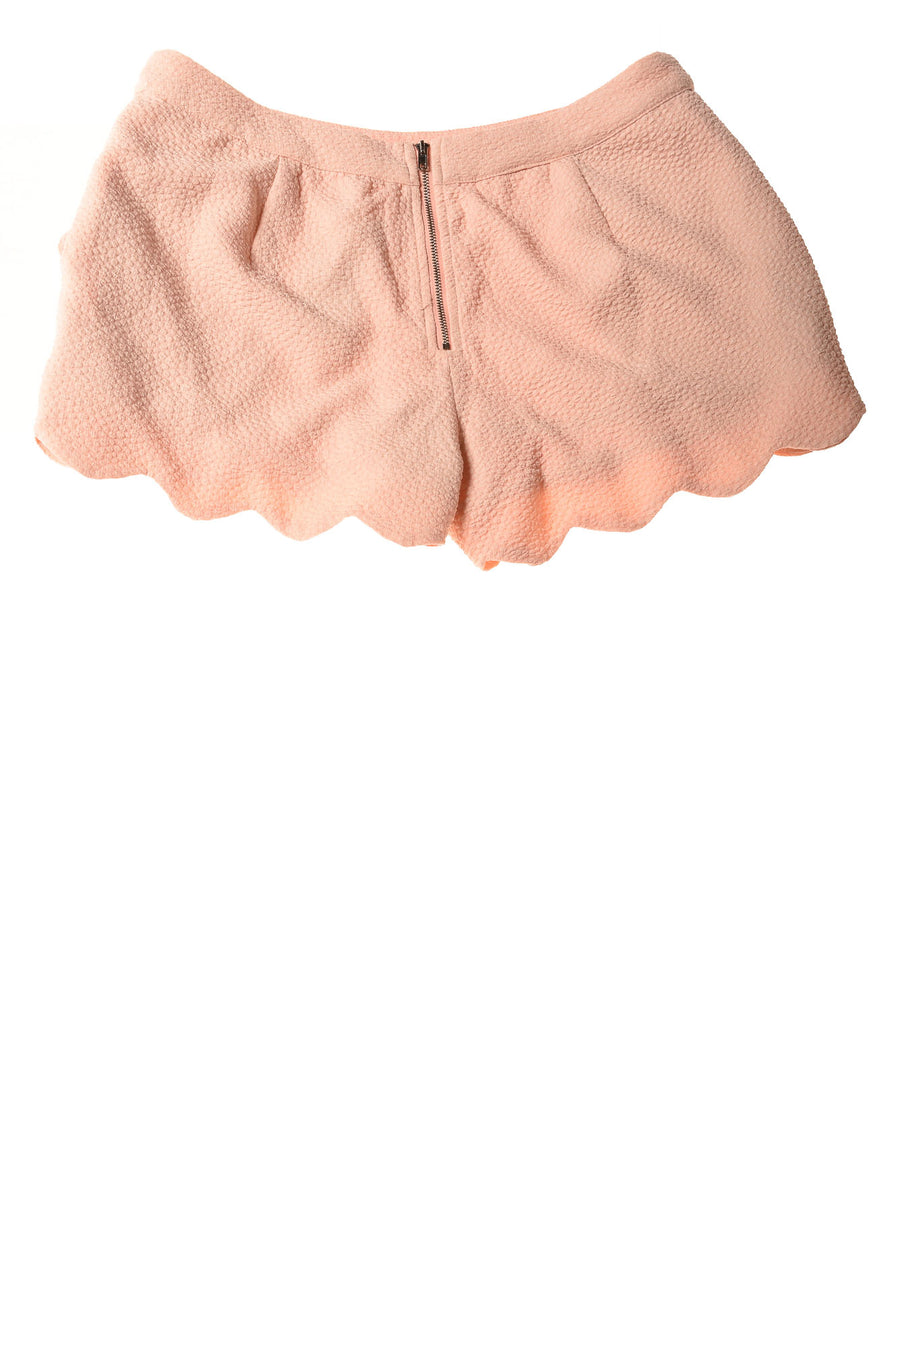 NEW Miami Women's Shorts Medium Blush